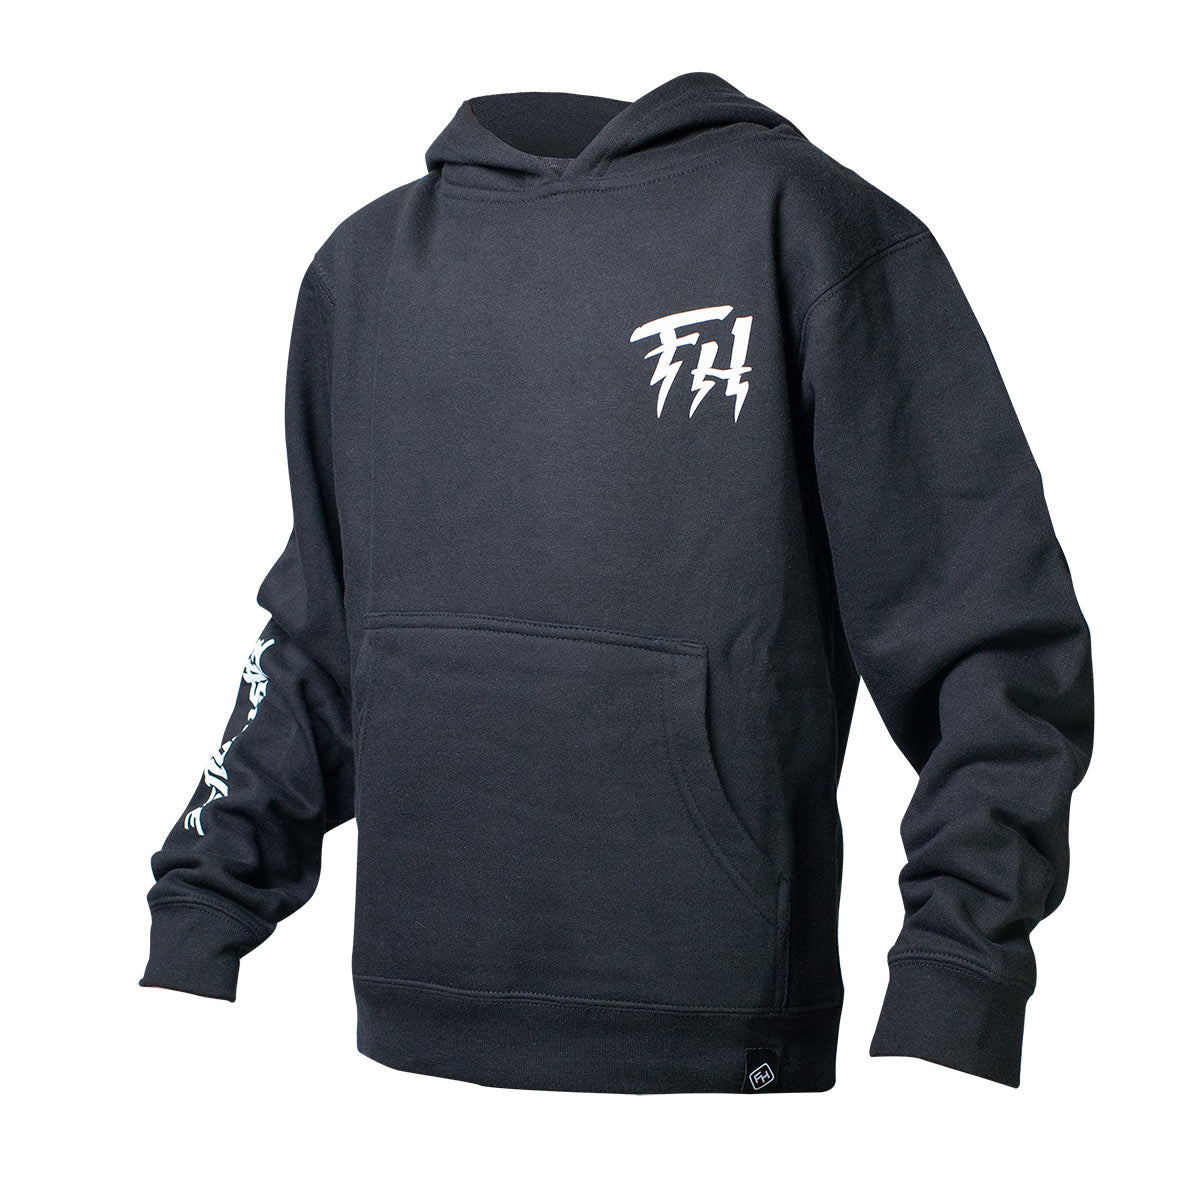 Beredude Youth Hooded Pullover - Black